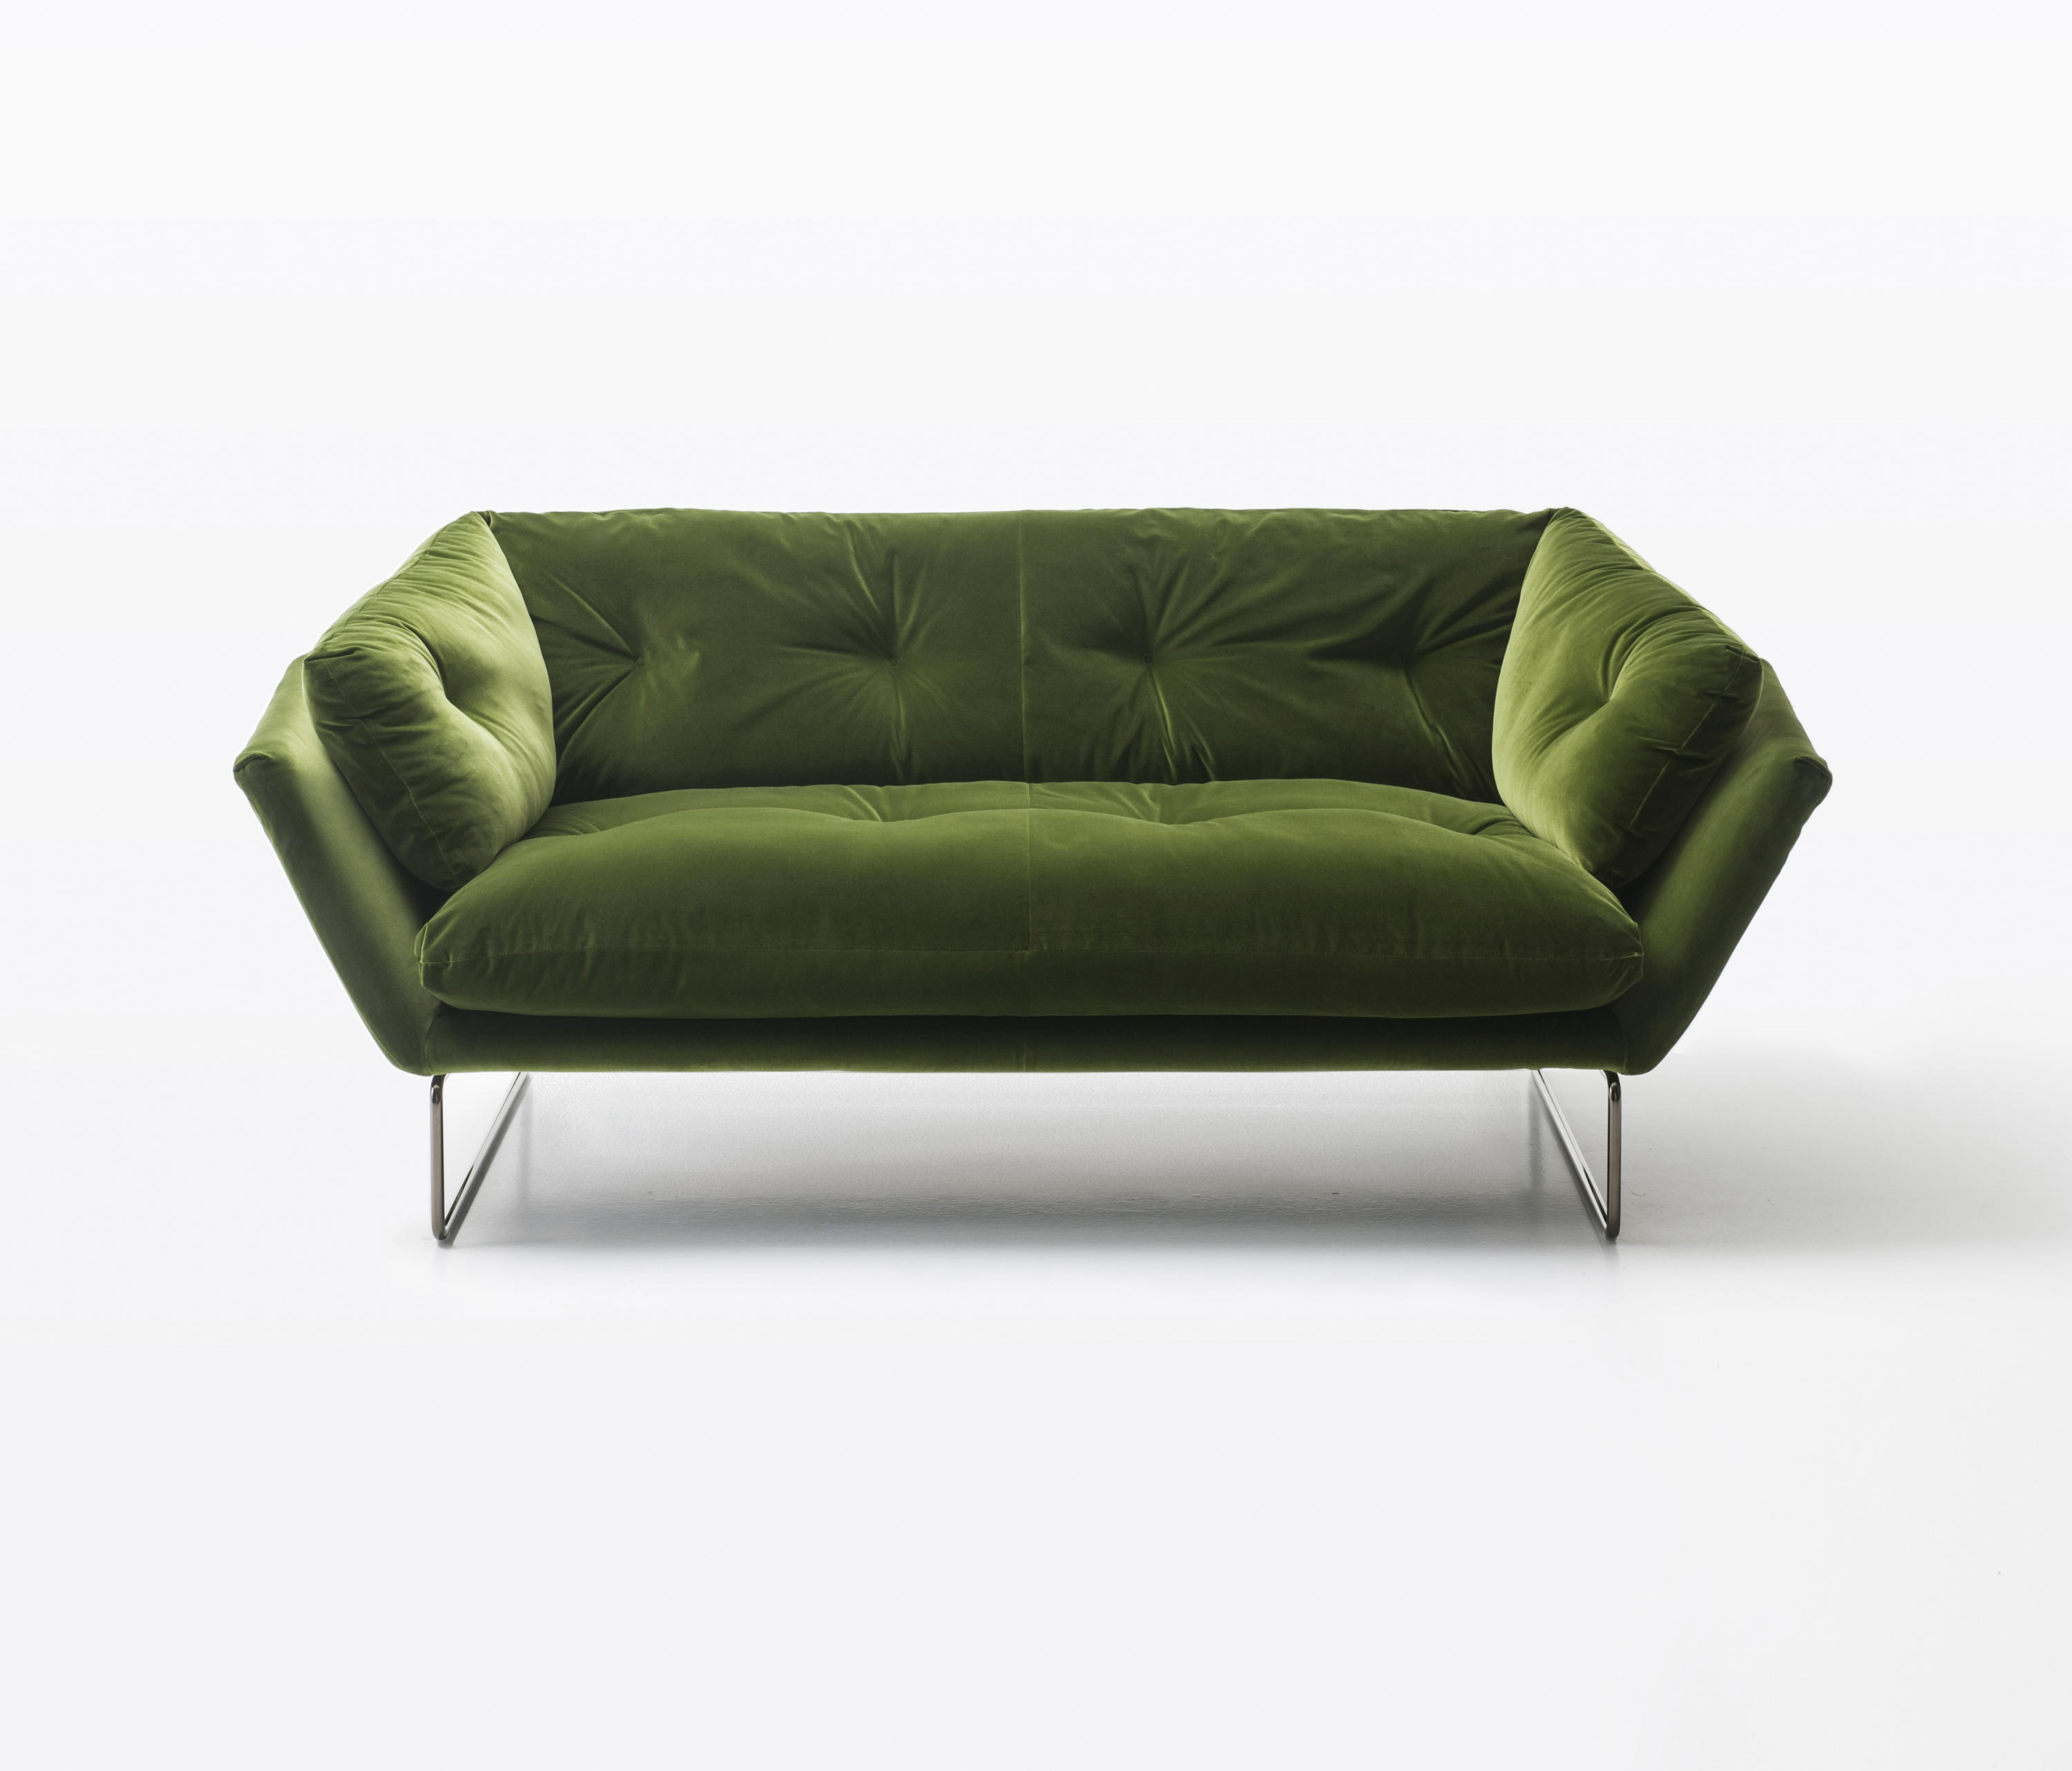 New York Suite Sofa By Saba Italia Sofas